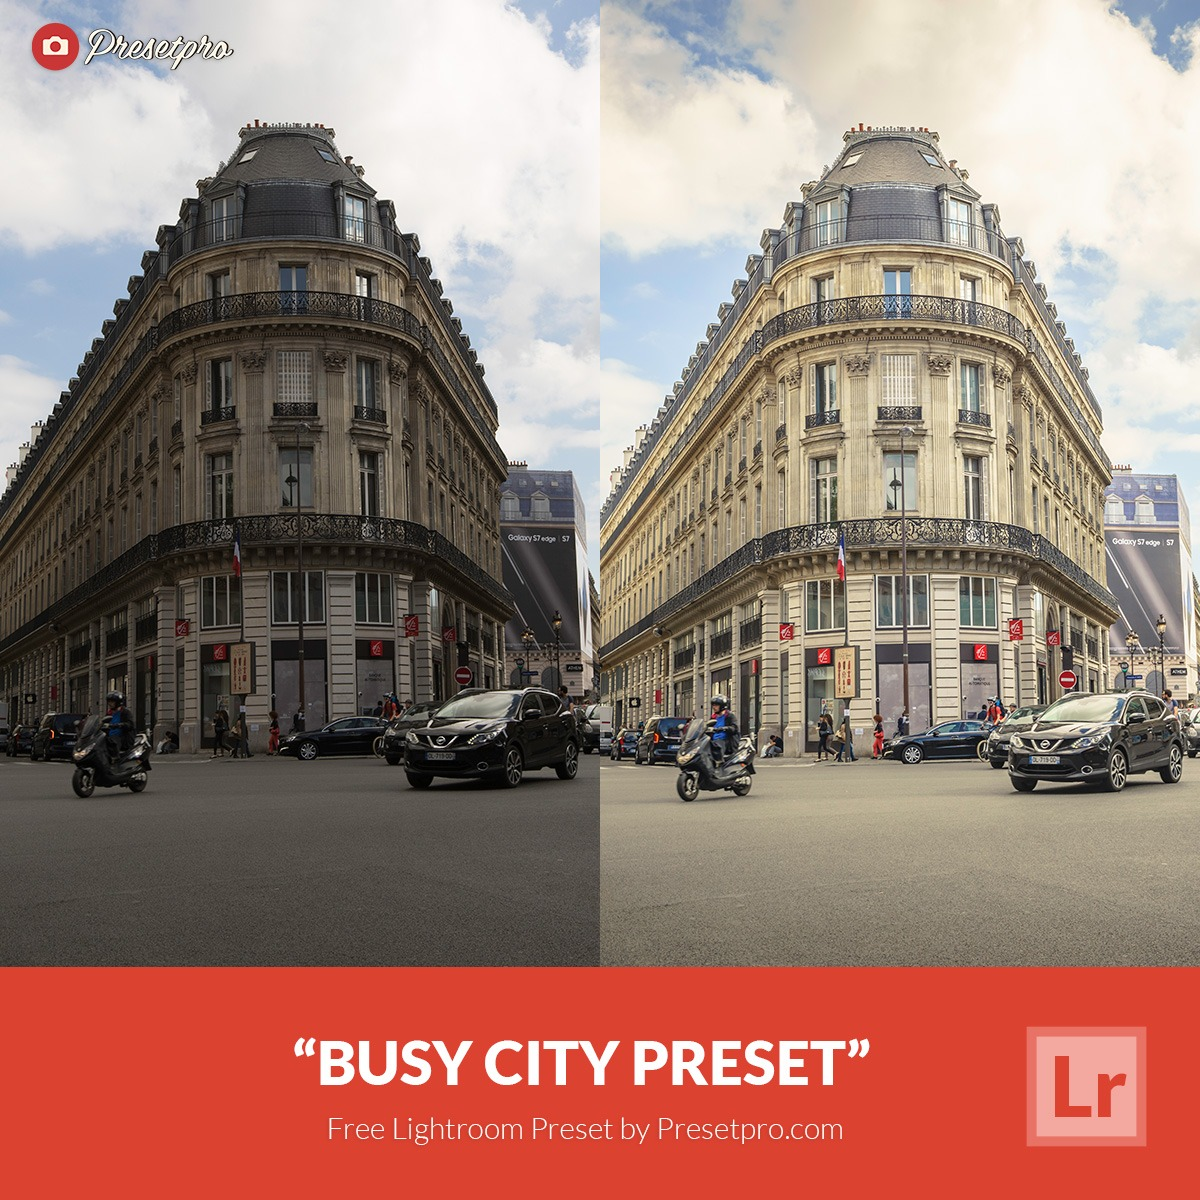 Free Lightroom presets for architecture photography